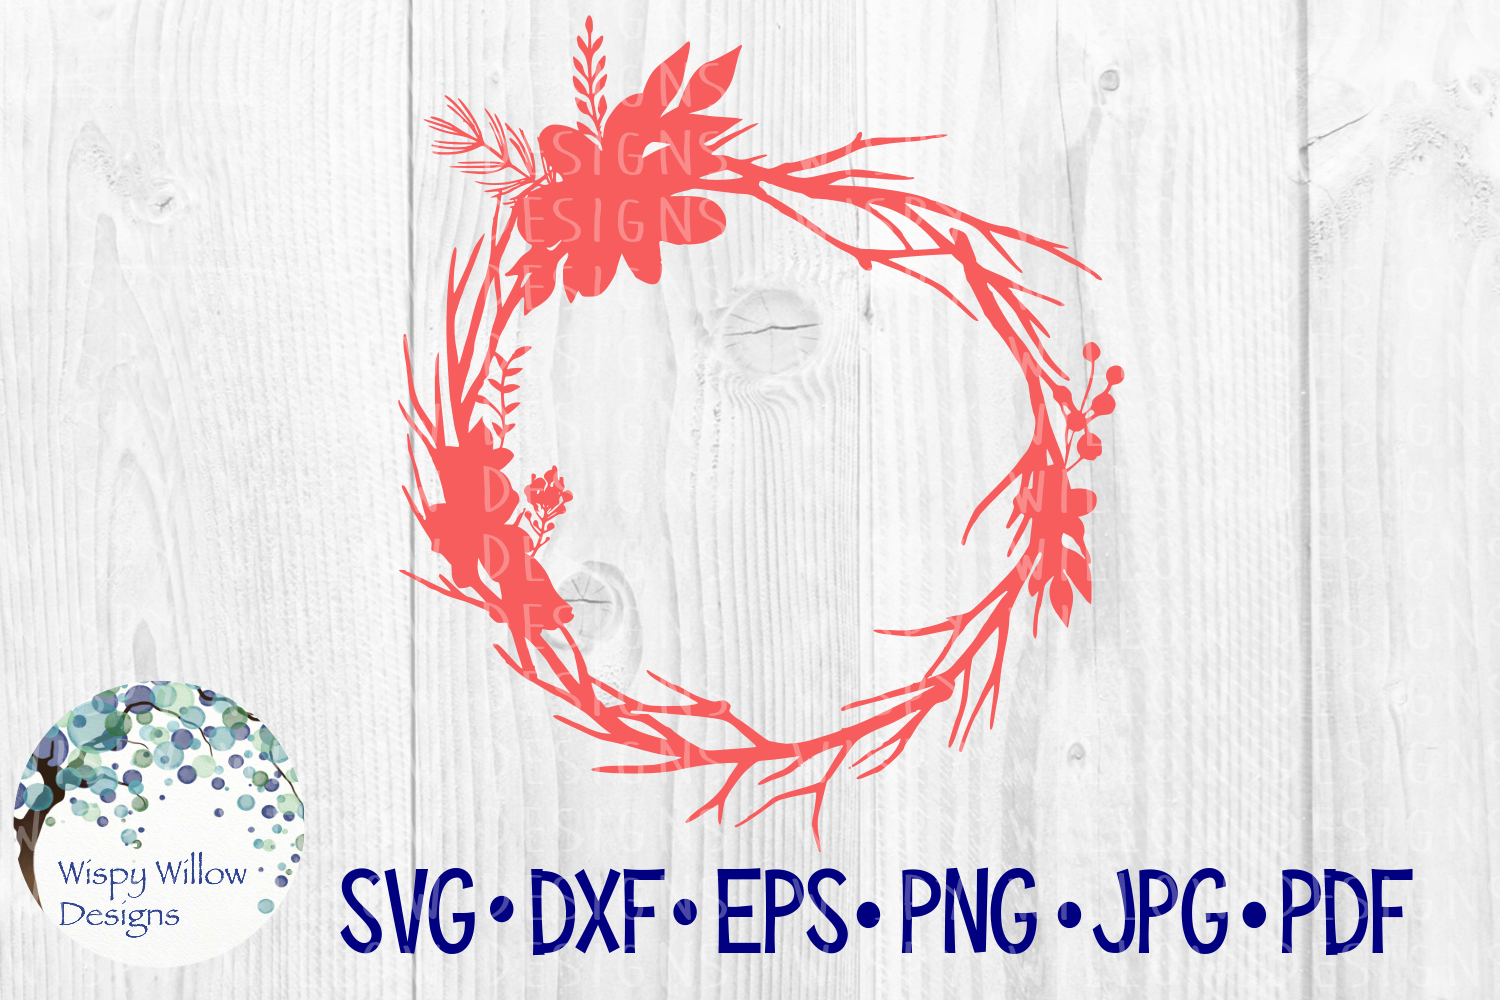 Download Free Floral Wreath Bird Nest Name Monogram Frame Border Cut File for Cricut Explore, Silhouette and other cutting machines.